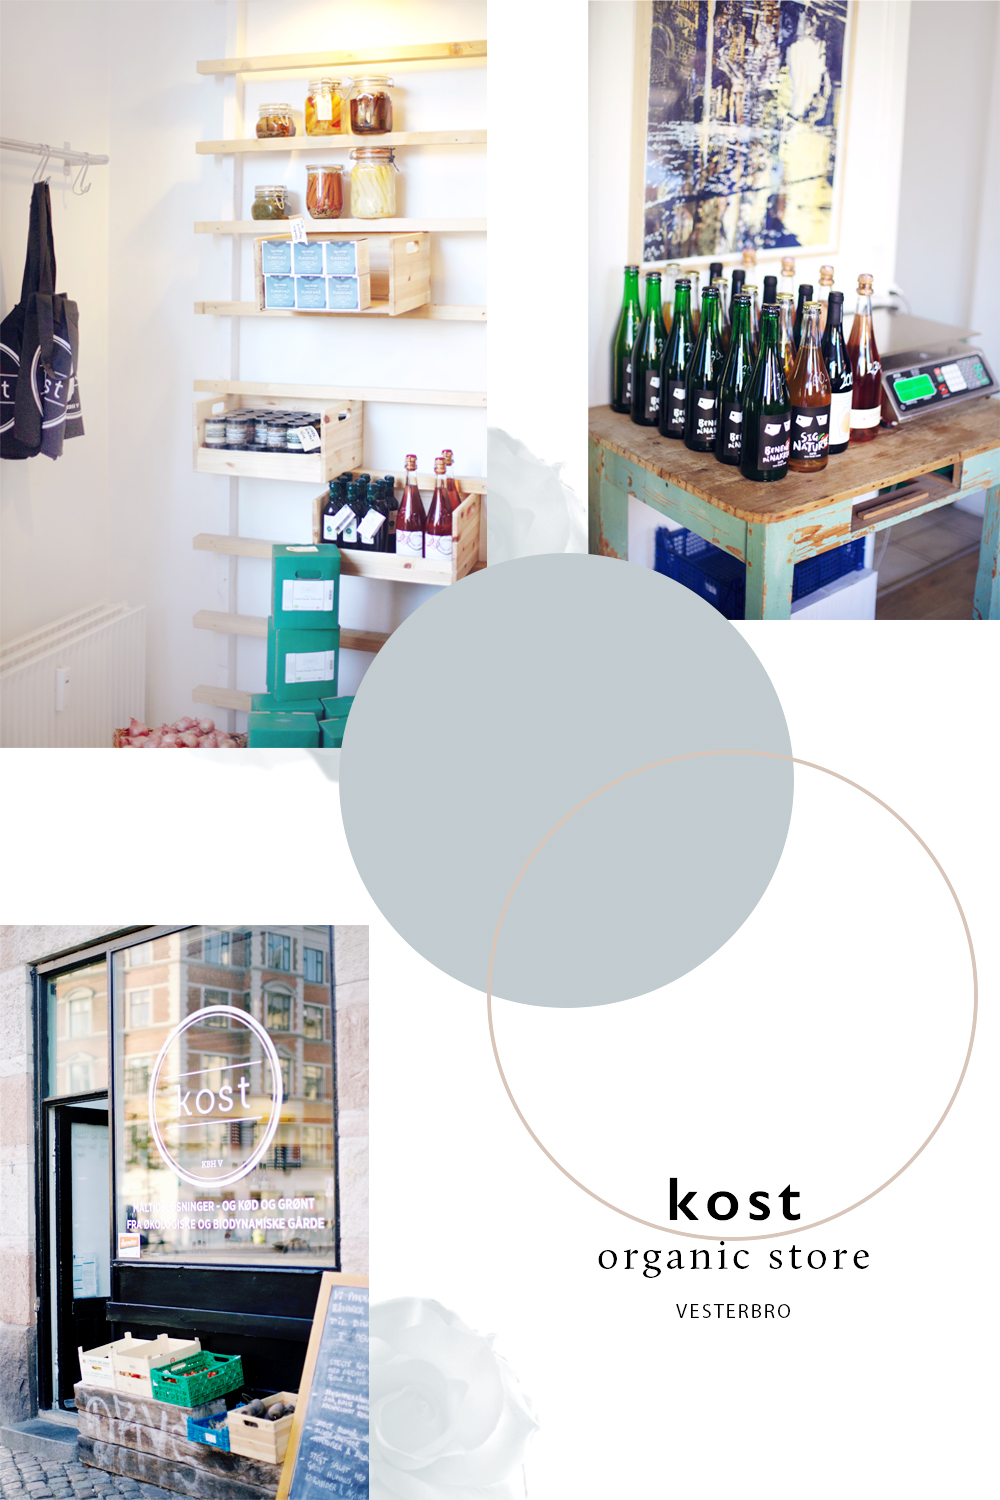 Eating sustainably in Copenhagen | Kost in Vesterbro | by Rebecca Hawkes